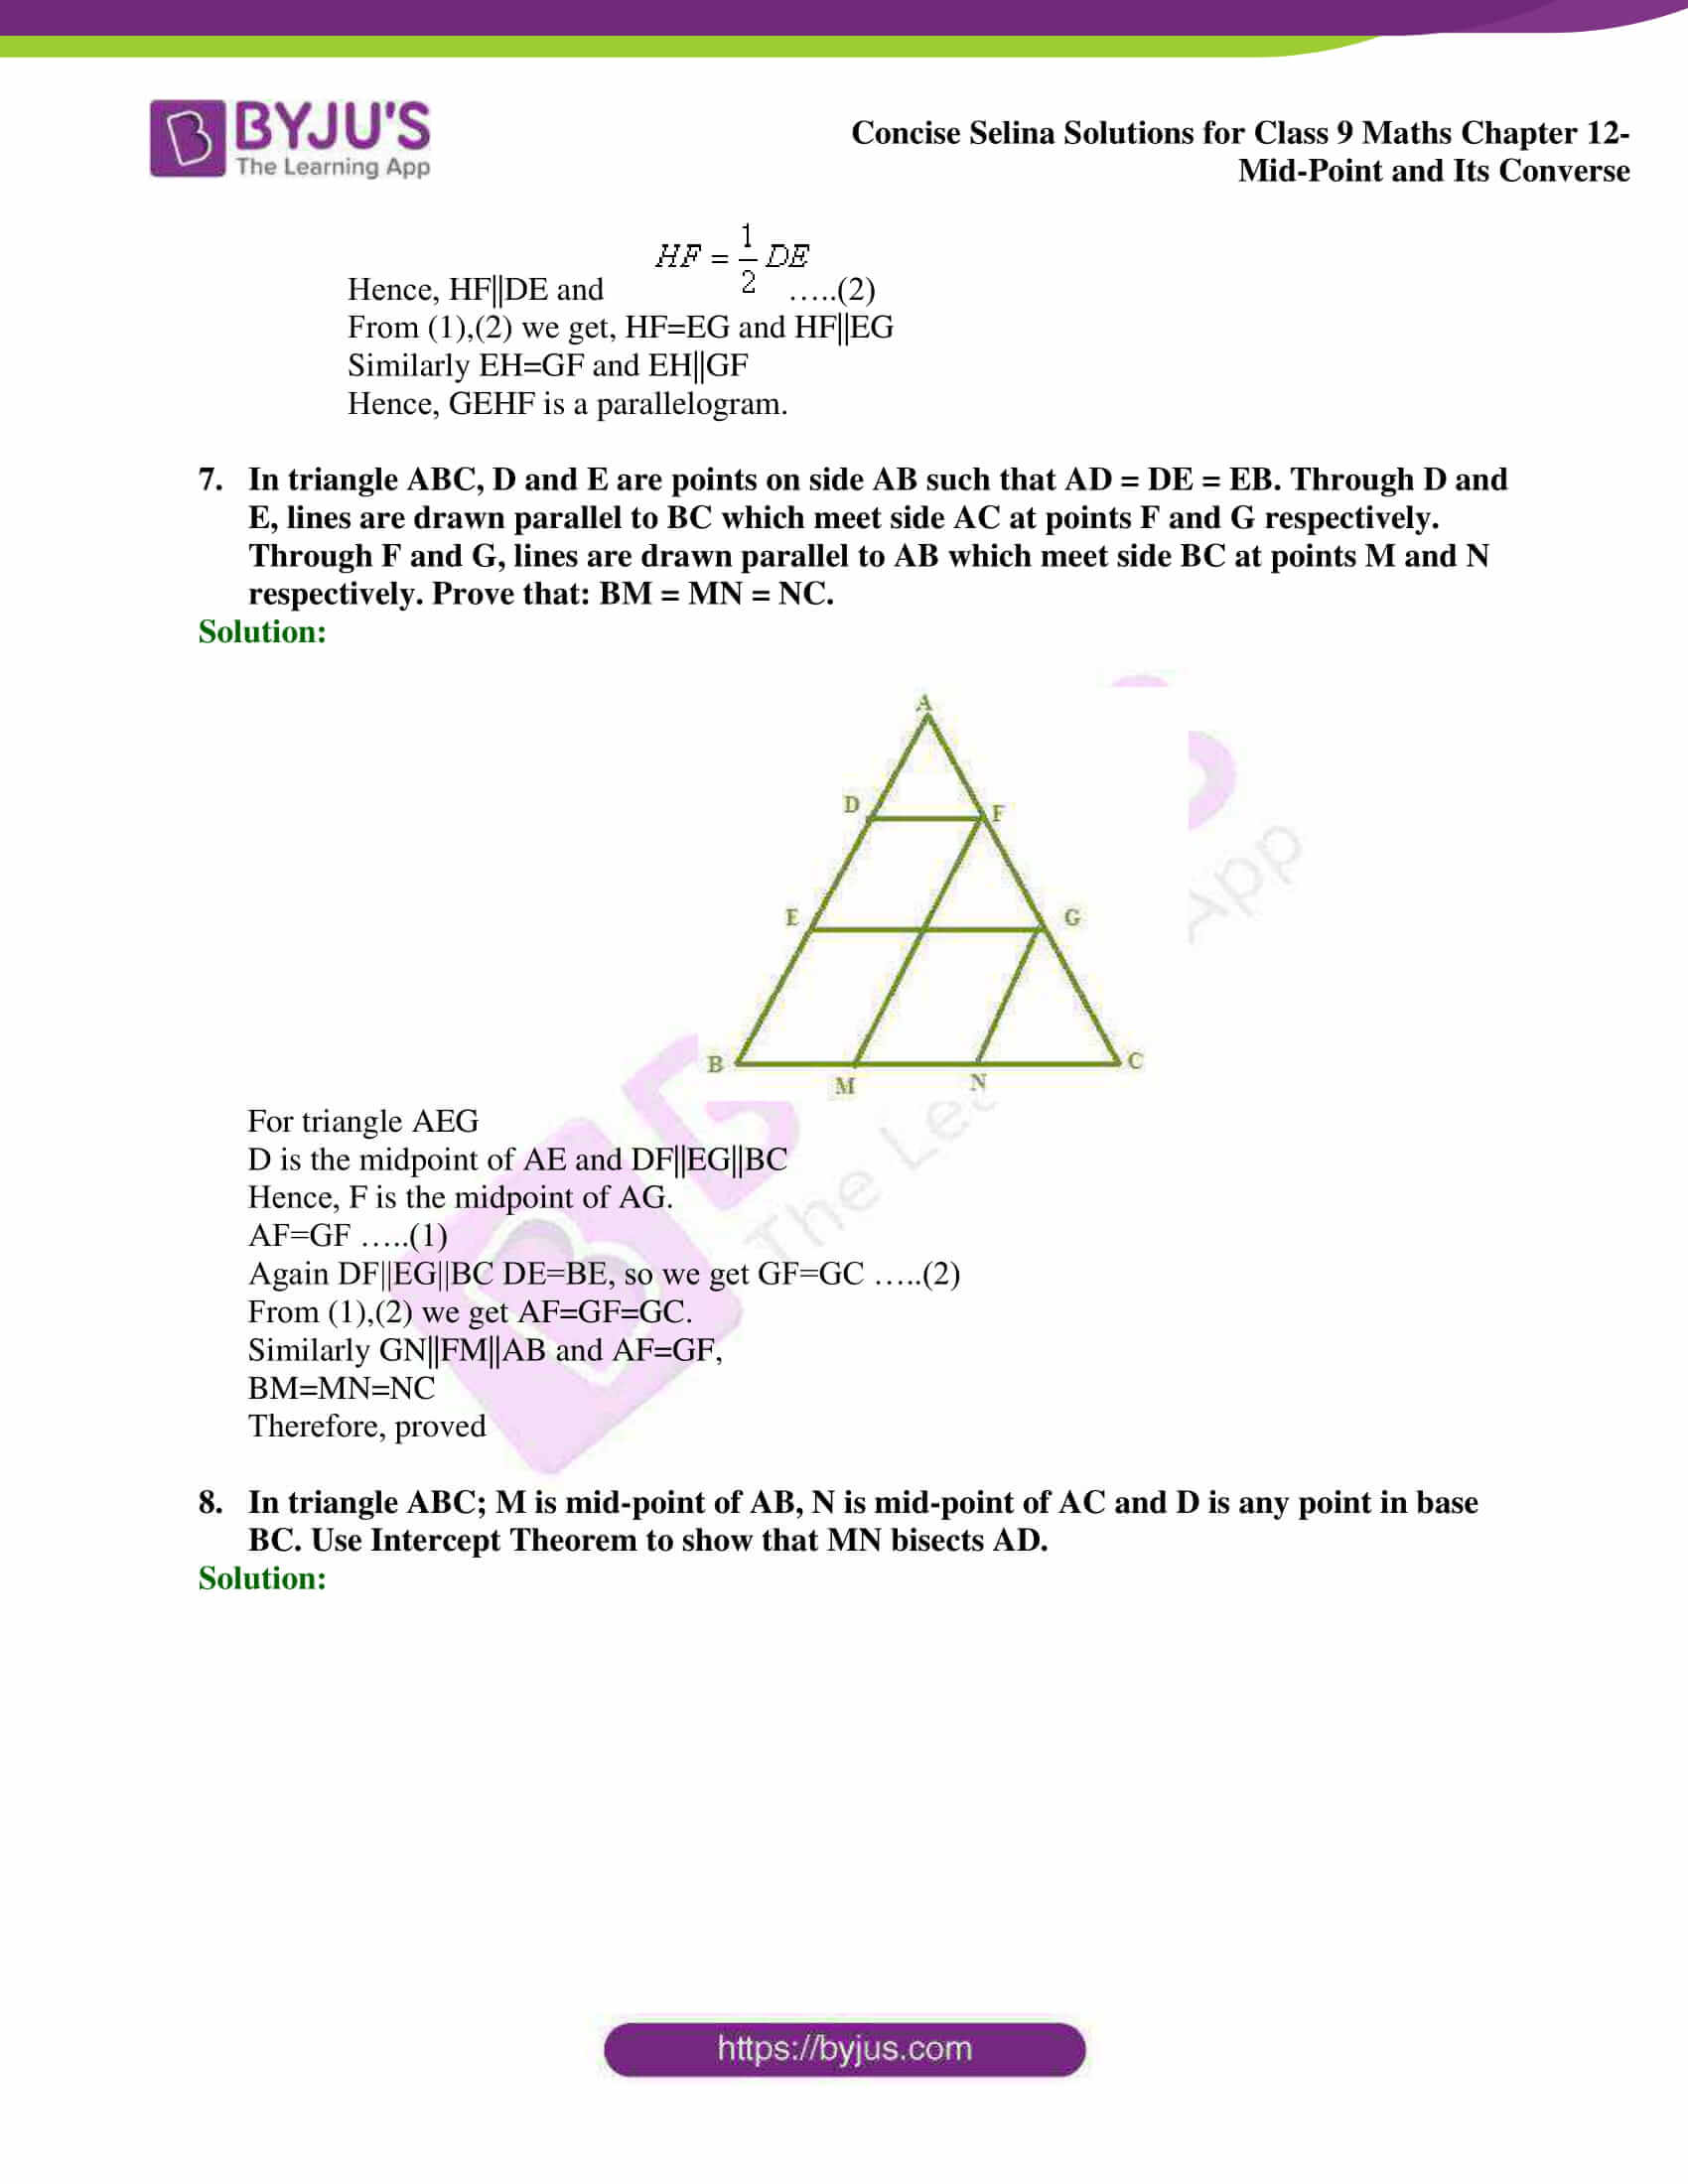 selina Solutions for Class 9 Maths Chapter 12 17